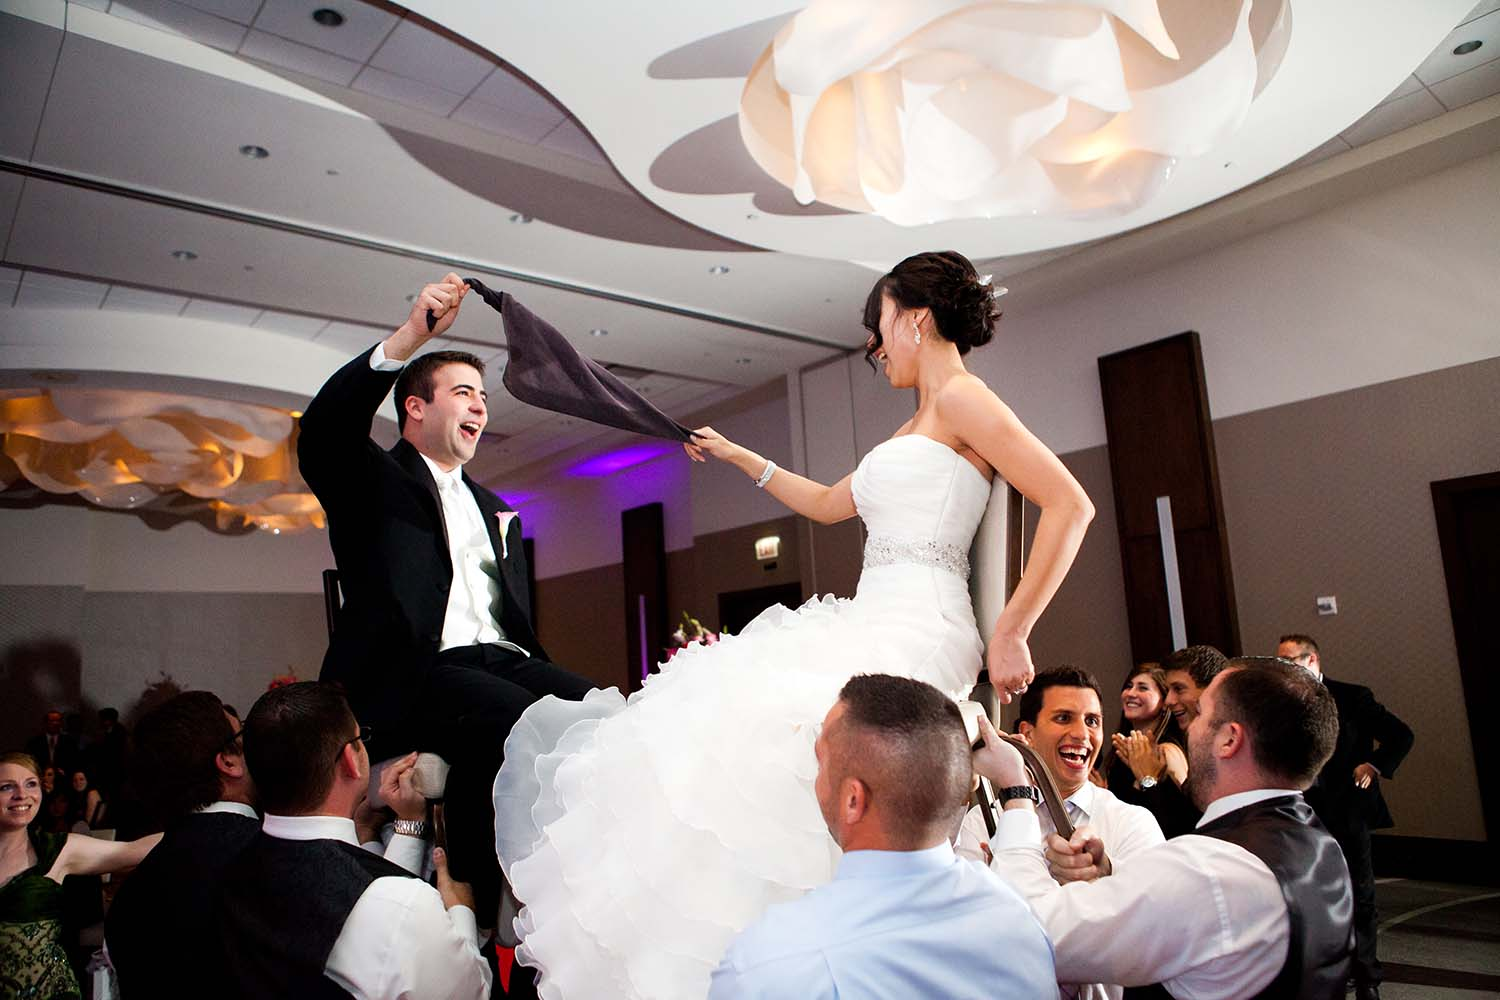 Bride Groom Jewish Wedding Horah Chair Dance